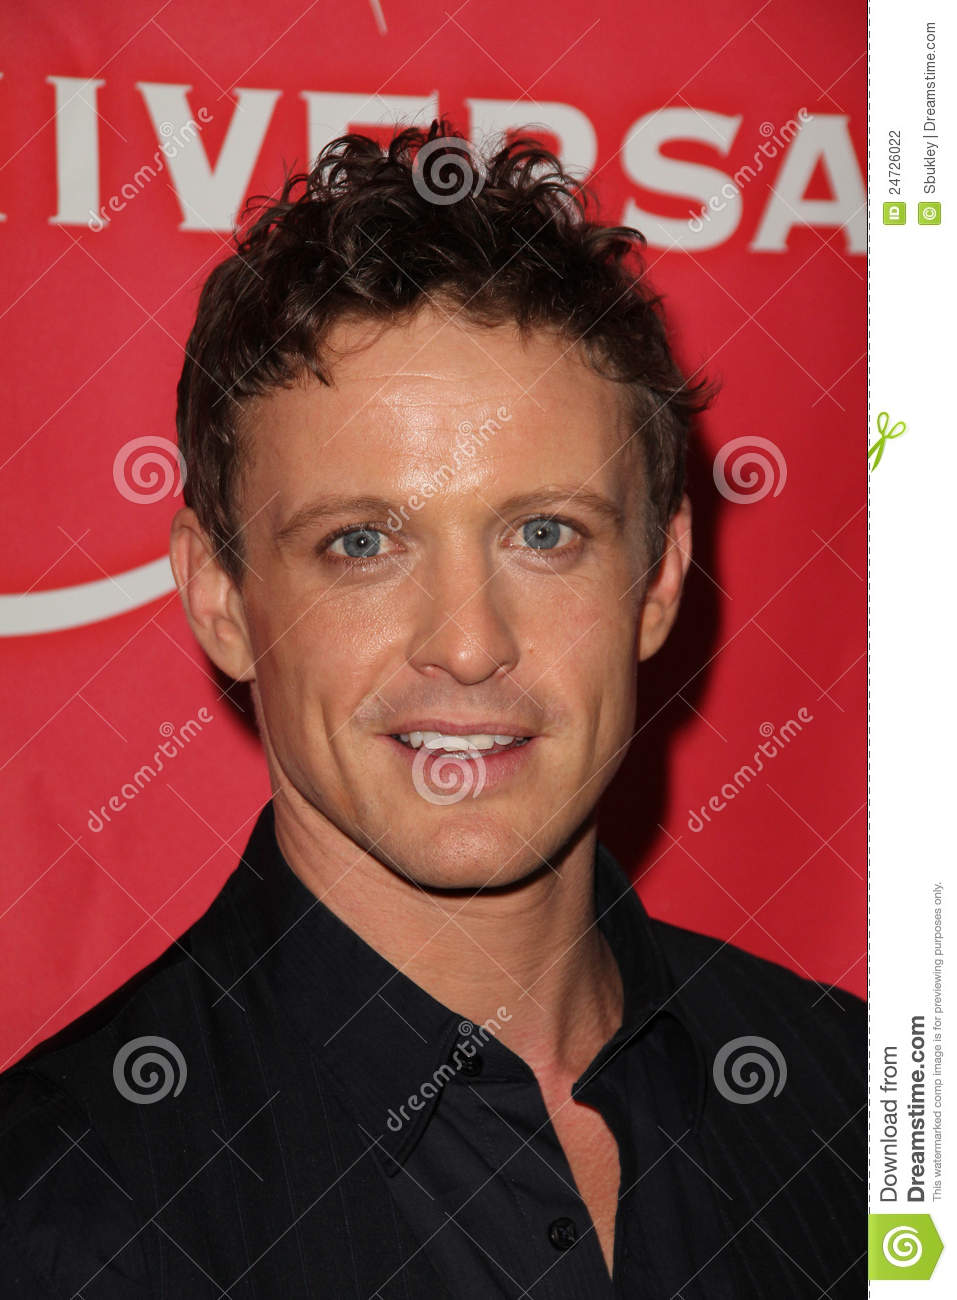 david lyons relationshipdavid lyons 2017, david lyons tumblr, david lyons 2016, david lyons vk, david lyons tesla, david lyons relationship, david lyons instagram, david lyons, david lyons wife, david lyons married, david lyons facebook, david lyons imdb, david lyons height, david lyons twitter, david lyons interview, revolution david lyons, david lyons and tracy spiridakos, david lyons wiki, david lyons sea patrol, david lyons carly pope